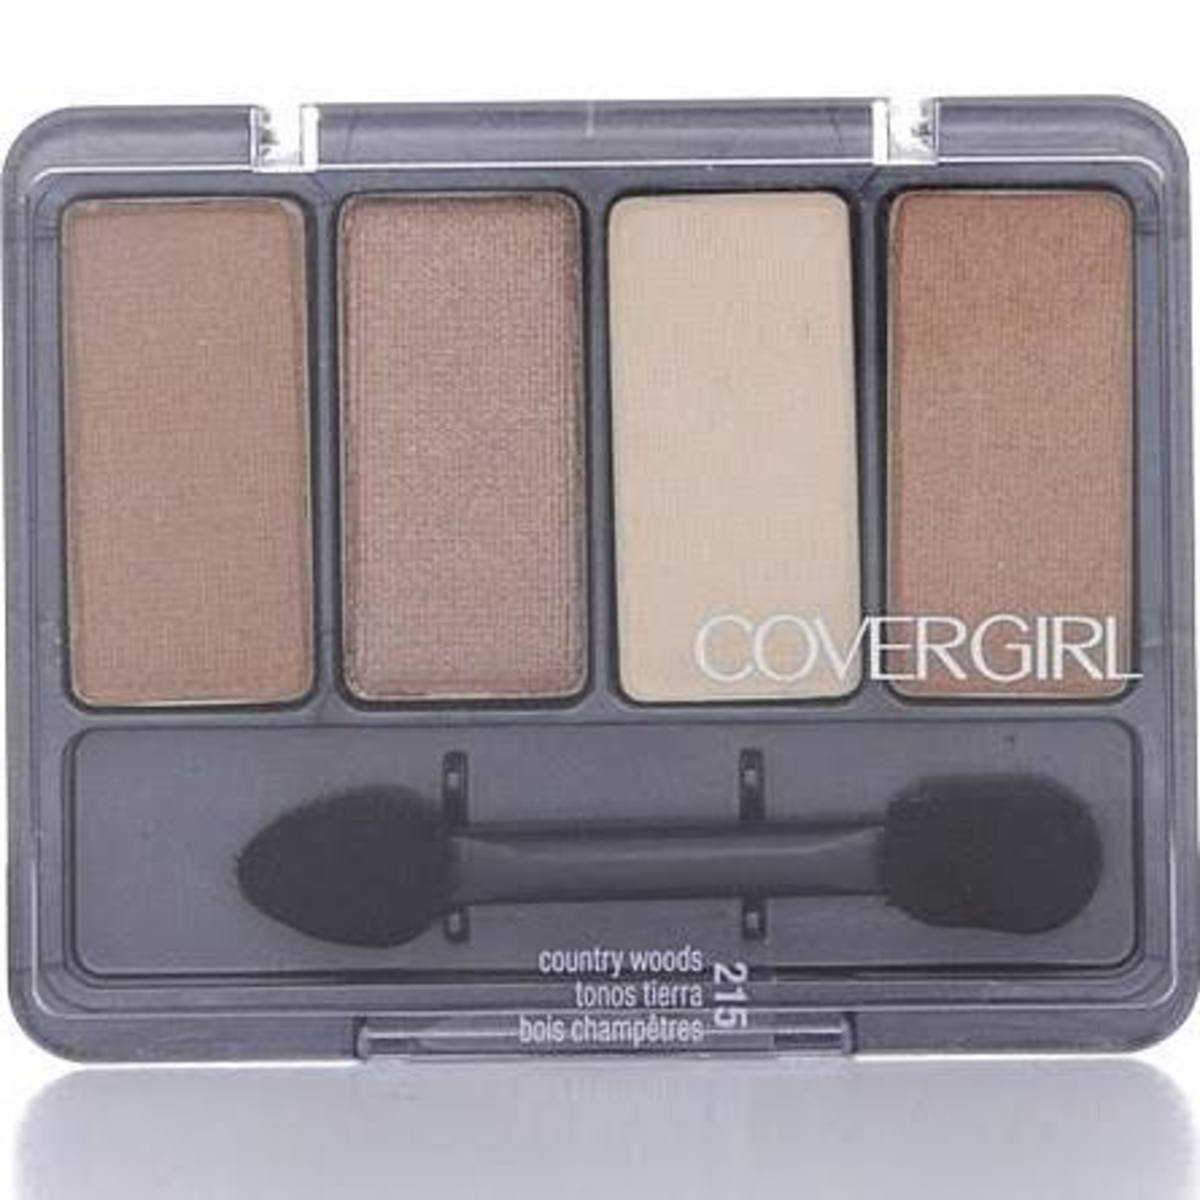 Covergirl's Country Woods palette is only around $4.00 and is perfect for an every day look.